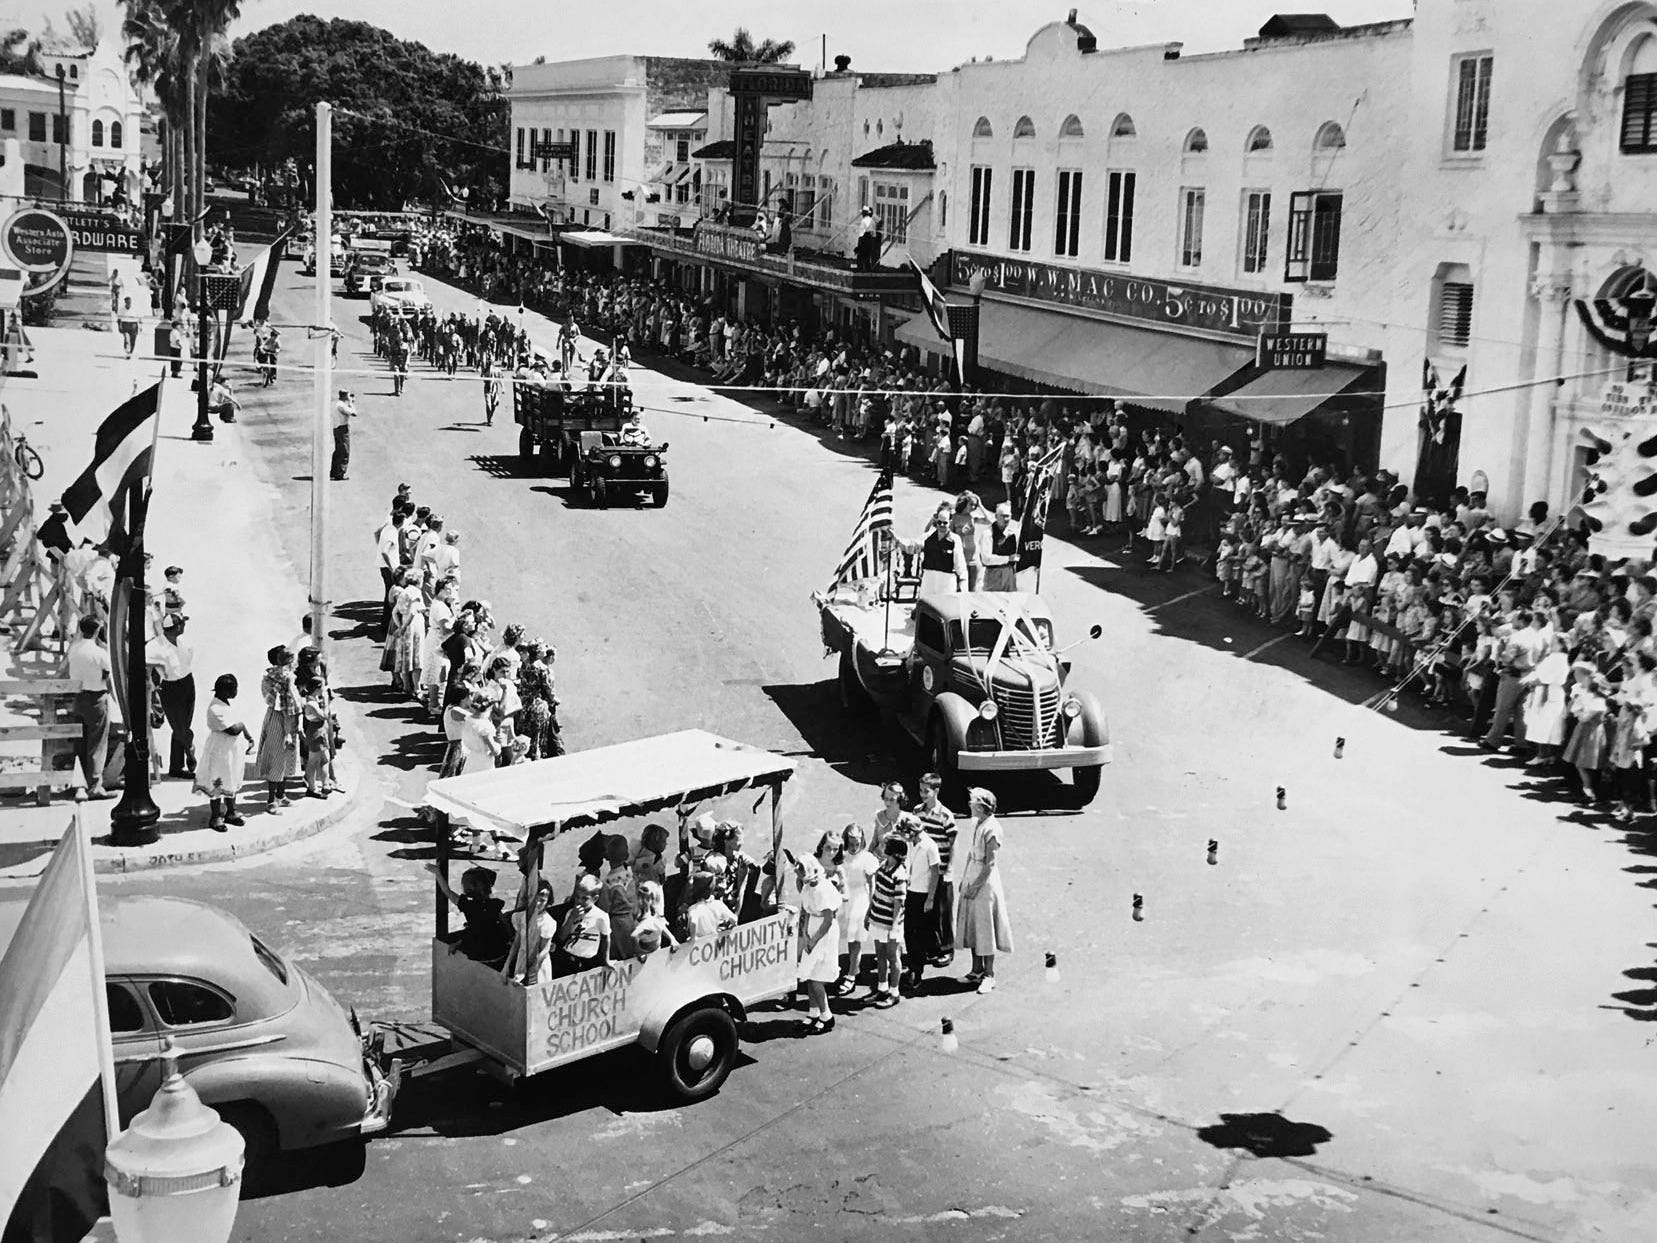 Parades were a popular pastime in Vero Beach. This one was headed north on 14th Avenue past the Florida Theatre where it then turned west on State Road 60.